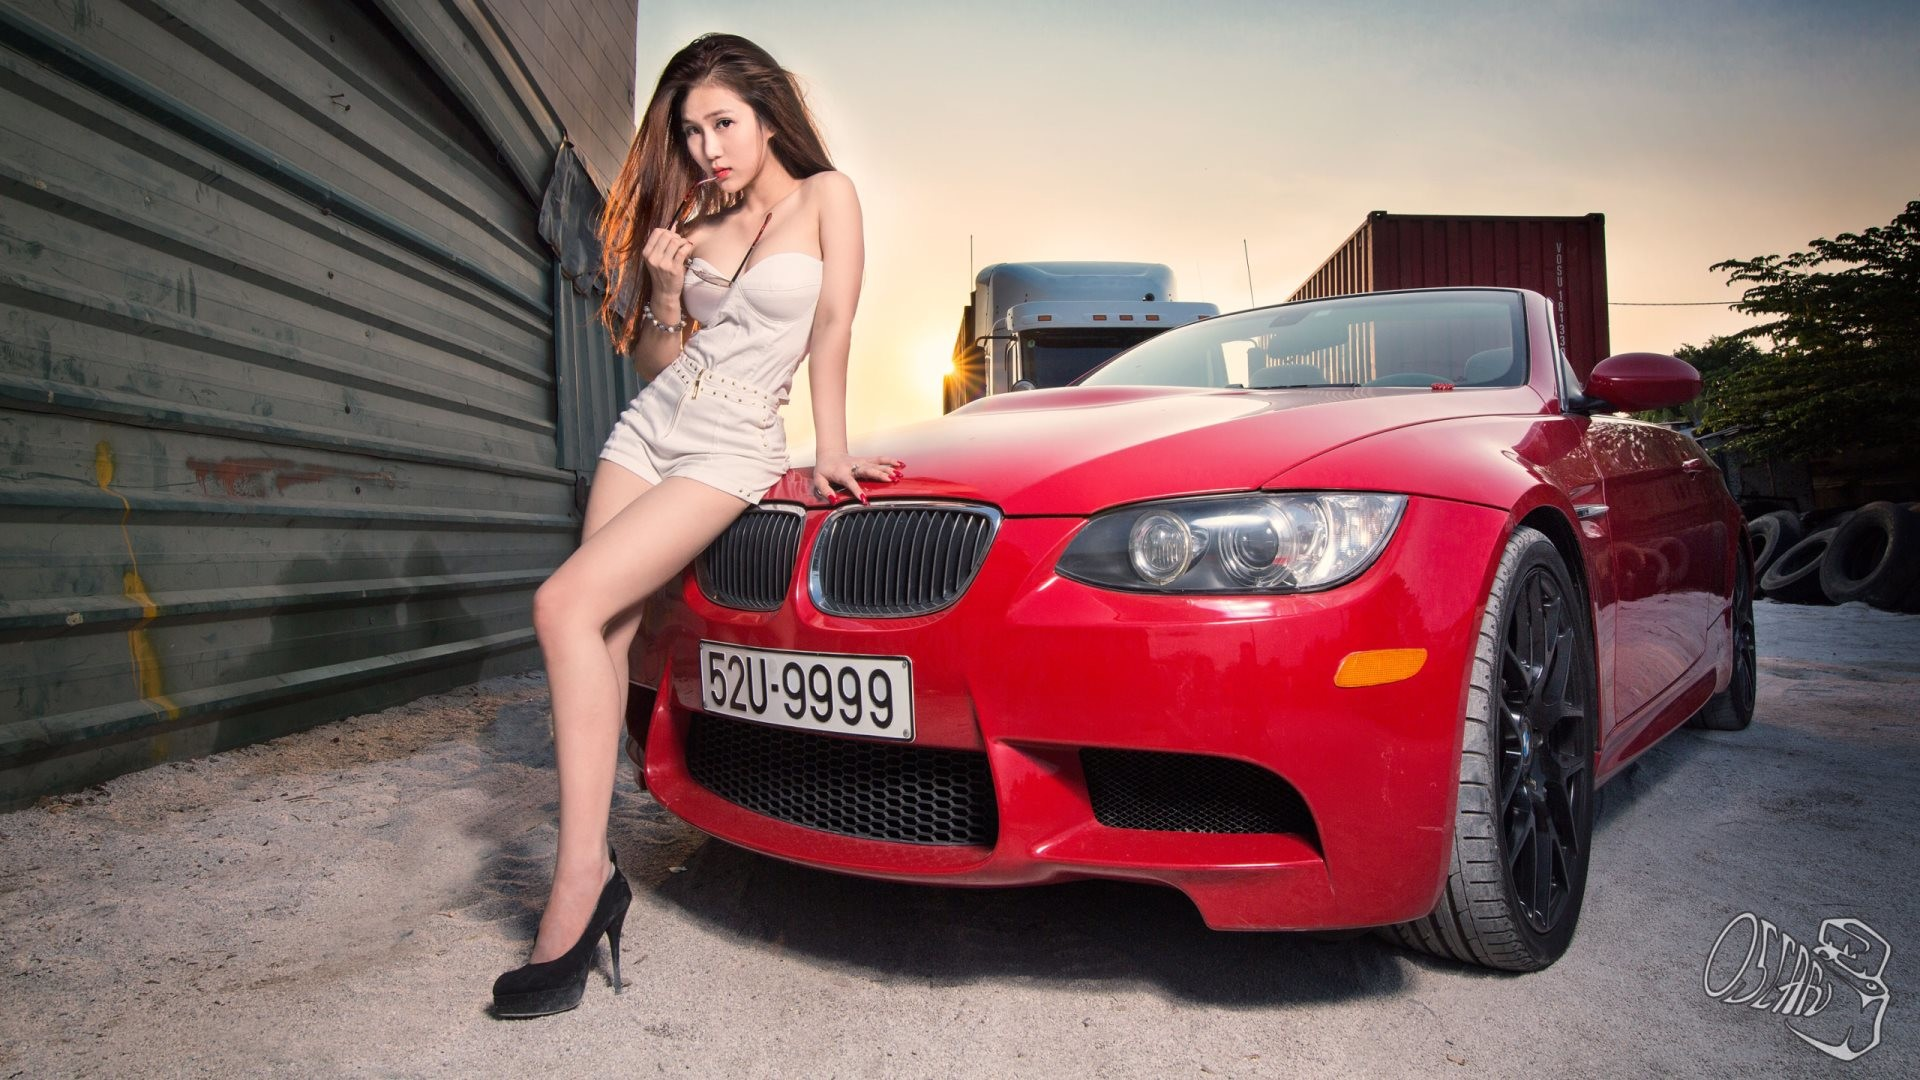 Chinese Girl With Car HD Wallpaper